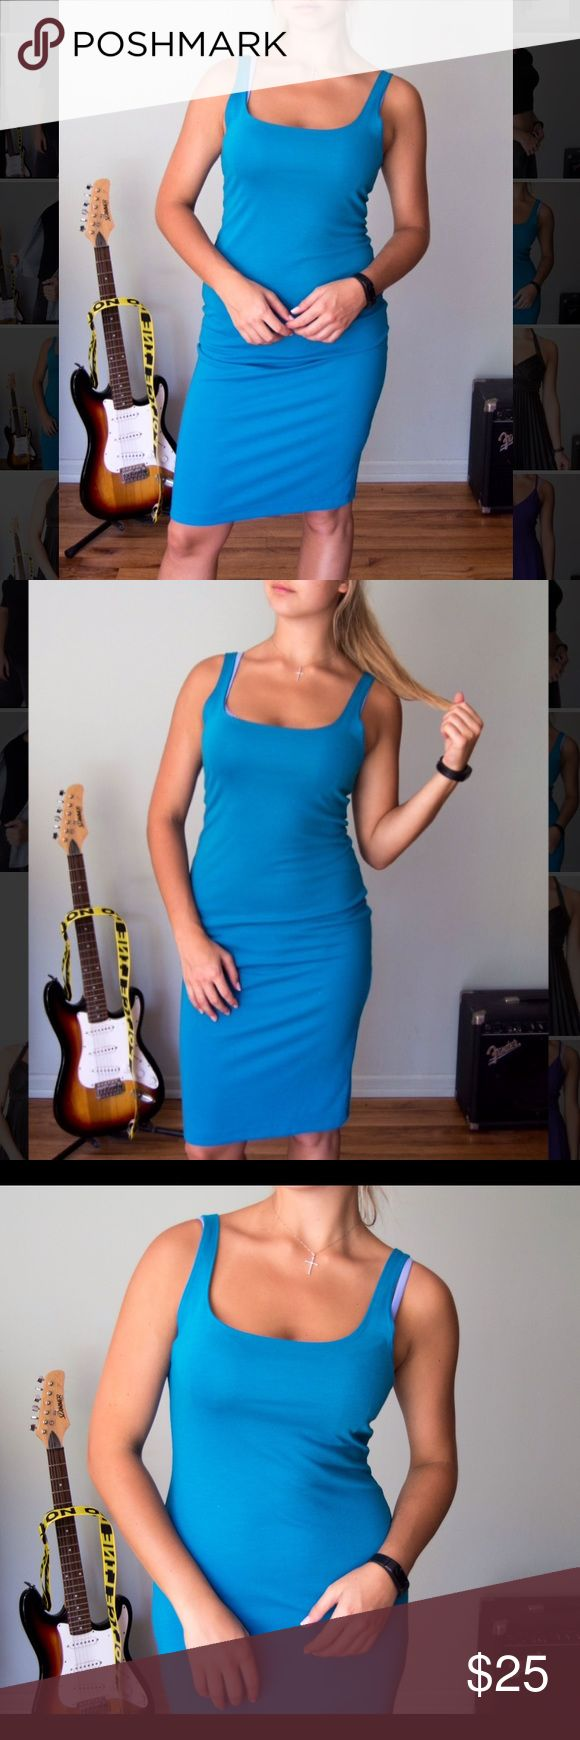 Teal/Blue Skin Tight Dress This blue skin tight dress is perfect for both a casual and fancy night out. Keep it simple or spice it up! Zara Dresses